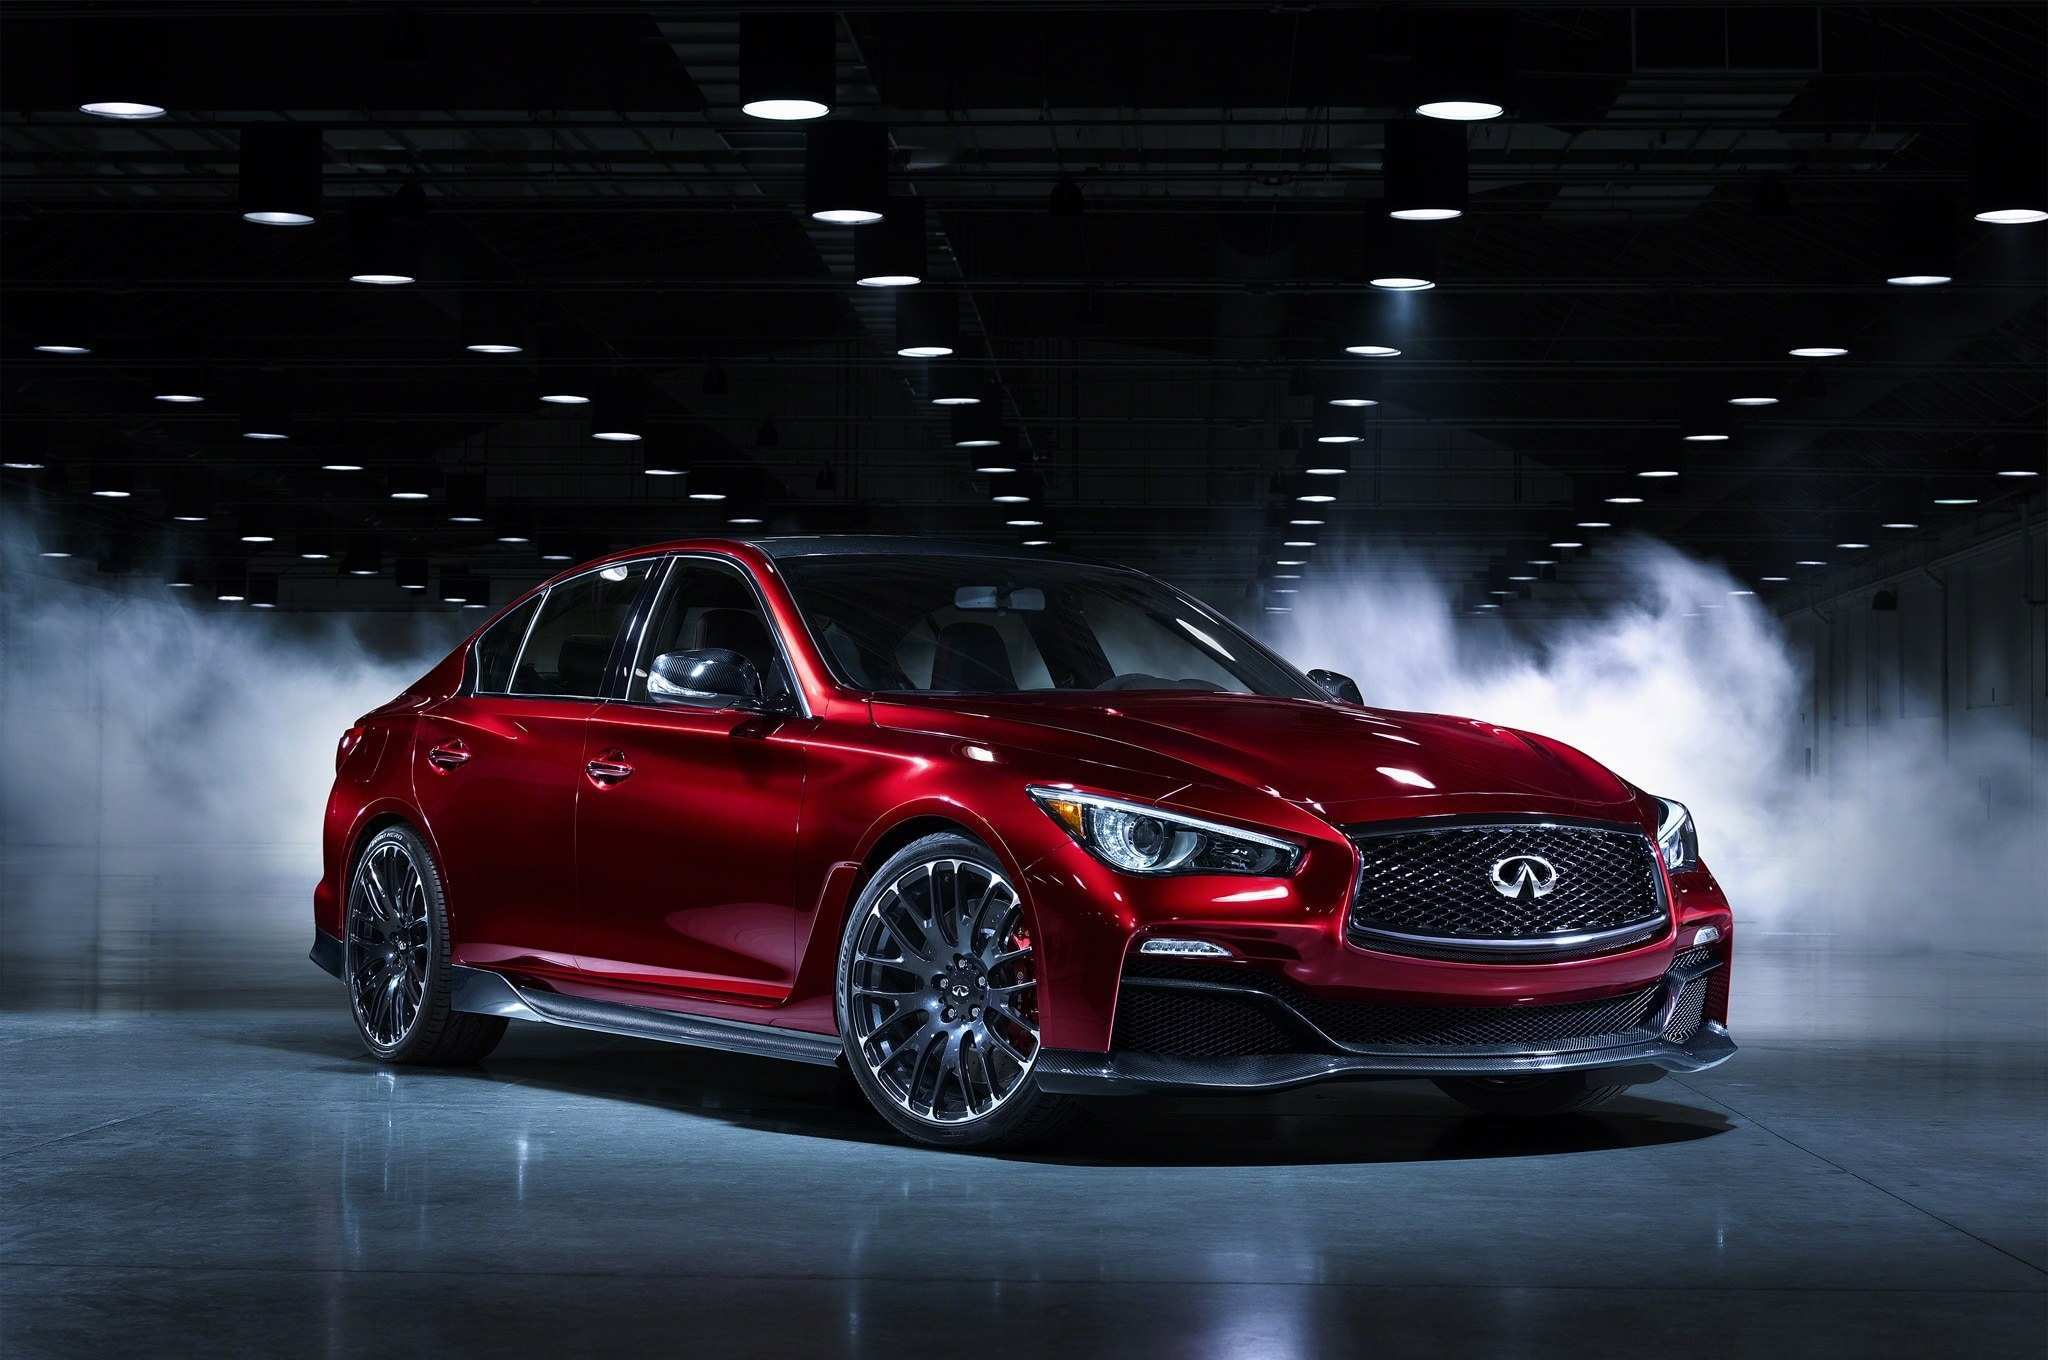 68 Great 2020 Infiniti Q50 Coupe Eau Rouge Performance and New Engine with 2020 Infiniti Q50 Coupe Eau Rouge